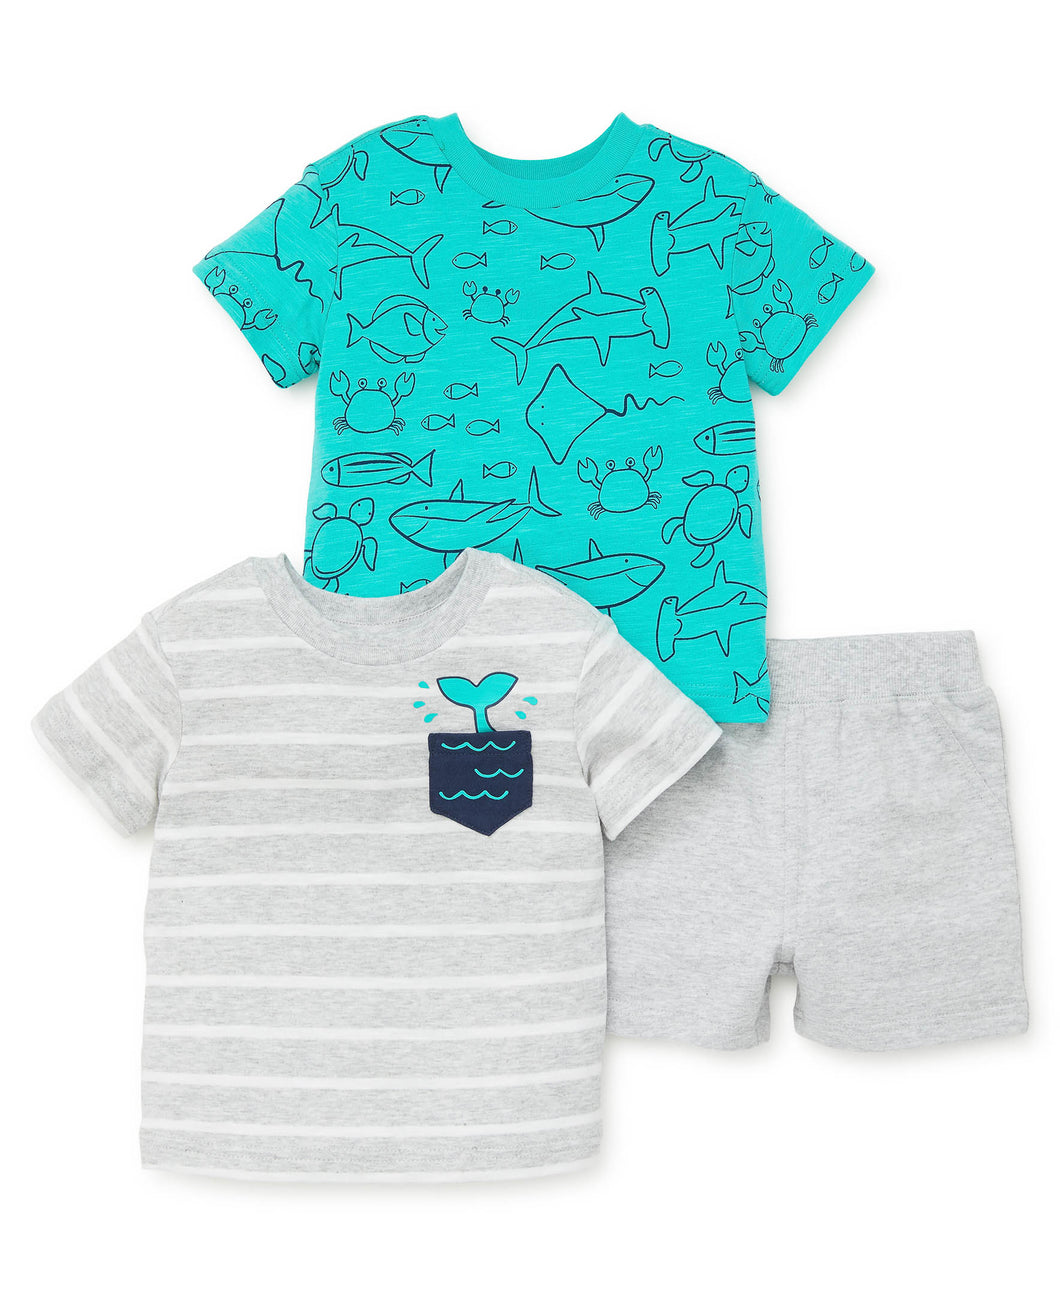 3 PC Sea Creatures Play Set